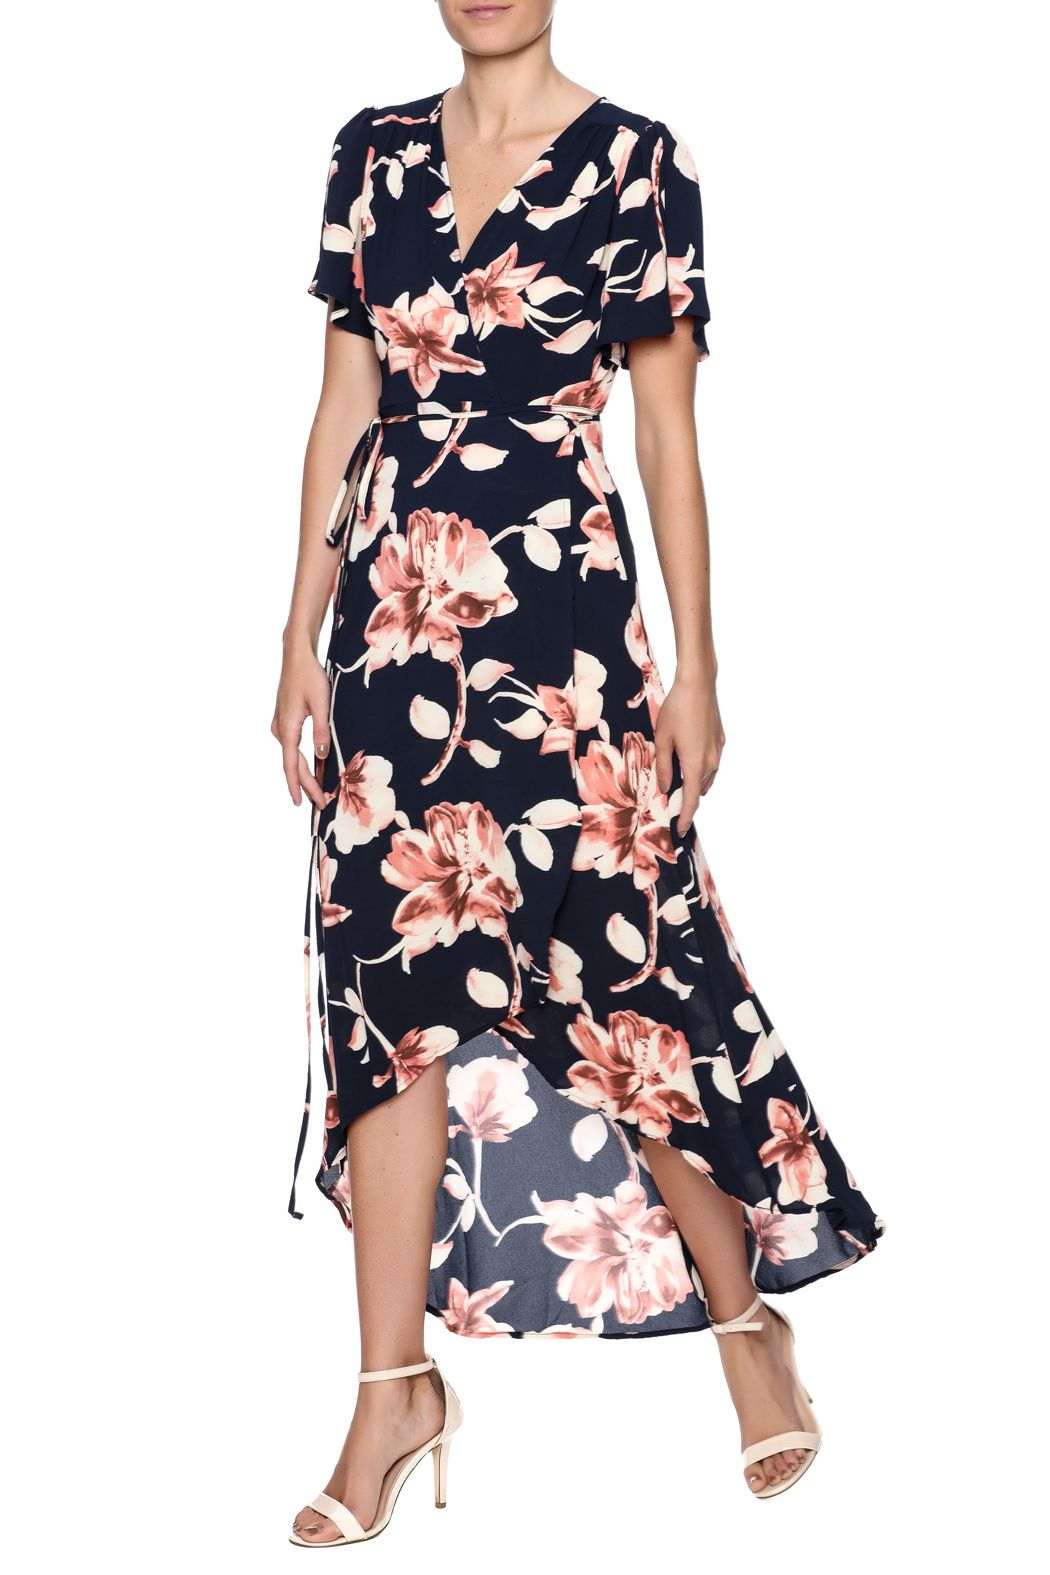 db2dd244ecd7 Navy blue floral printed wrap dress with short sleeves v-neckline high low  front andadjustable side ties. Navy Floral Wrap Dress by Peppermint.